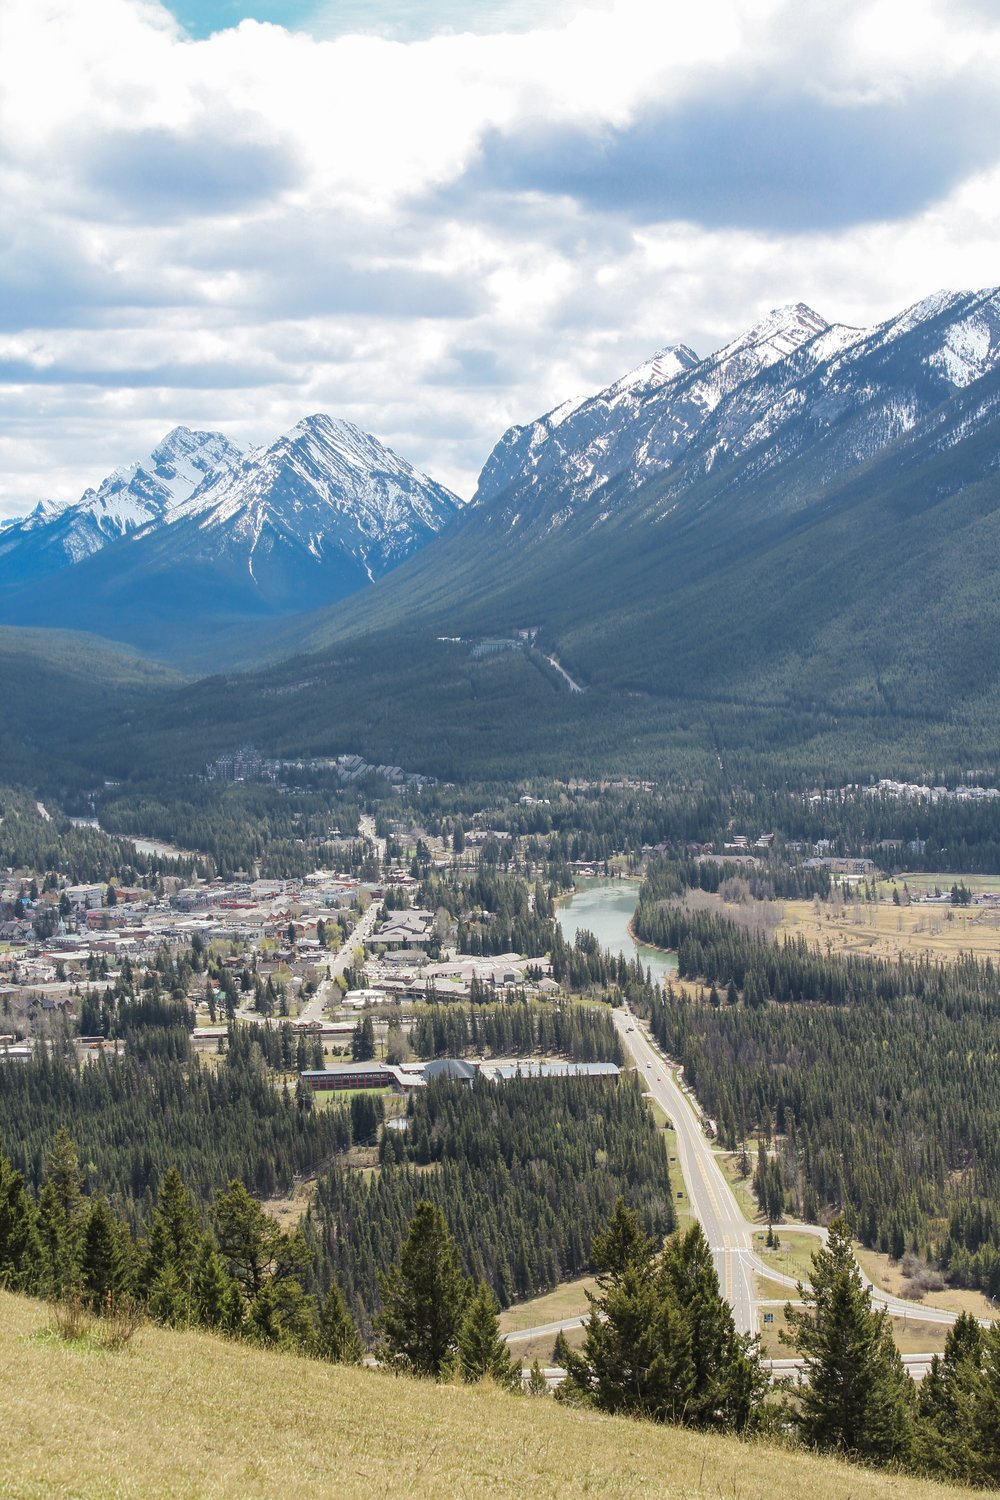 The view from the Mt. Norquay Lookout